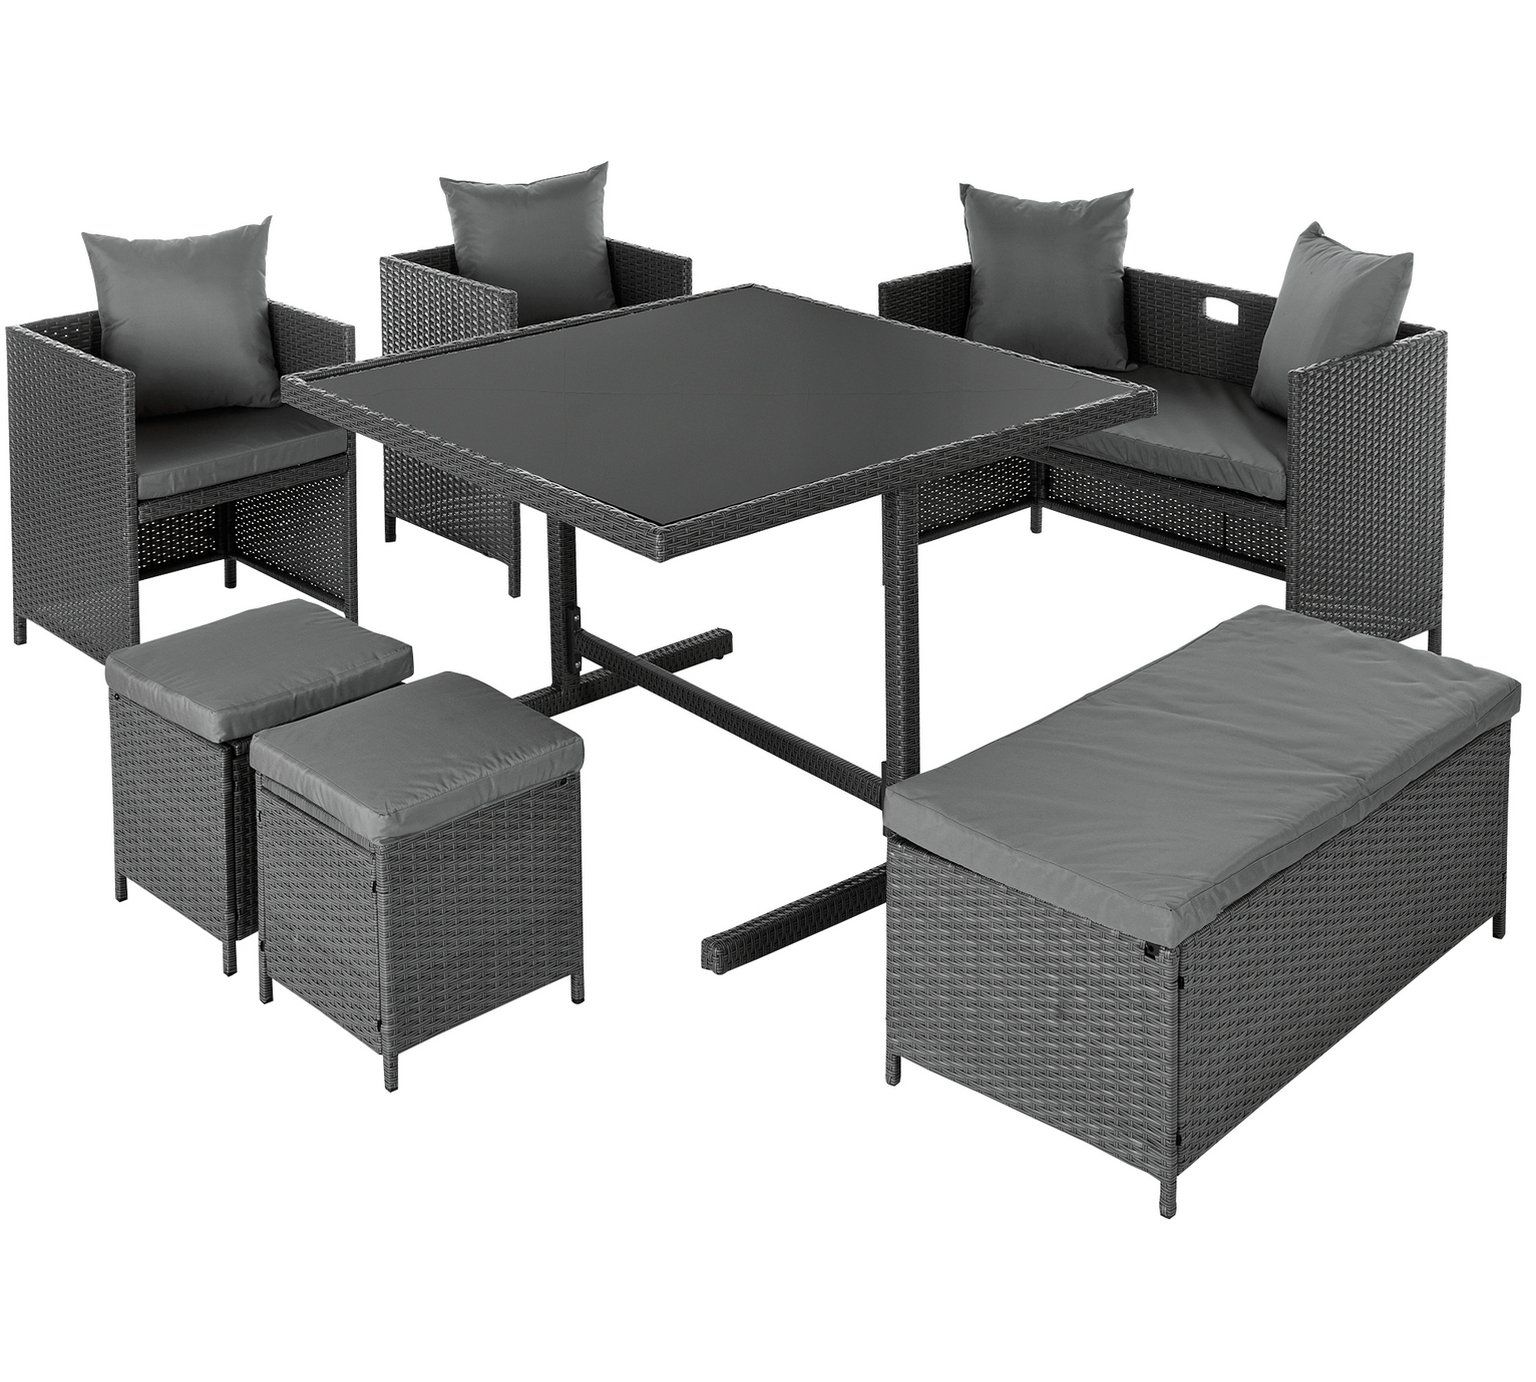 Buy Home 8 Seater Rattan Cube Set With Storage At Argos Co Uk Your Online Shop For Garden T Patio Furniture Sets Garden Table And Chairs Table And Chair Sets